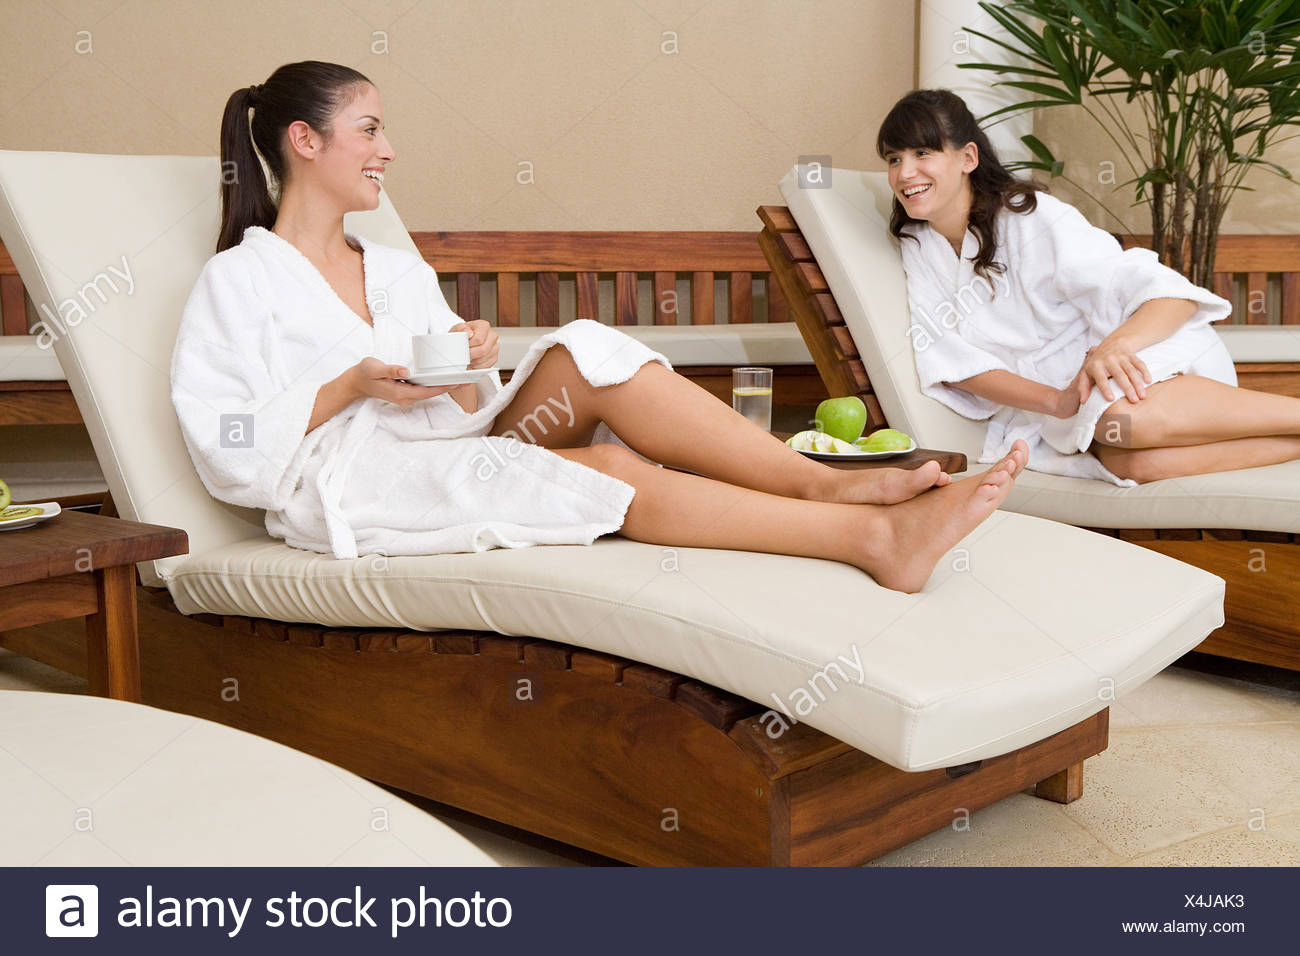 Women relaxing at spa Stock Photo